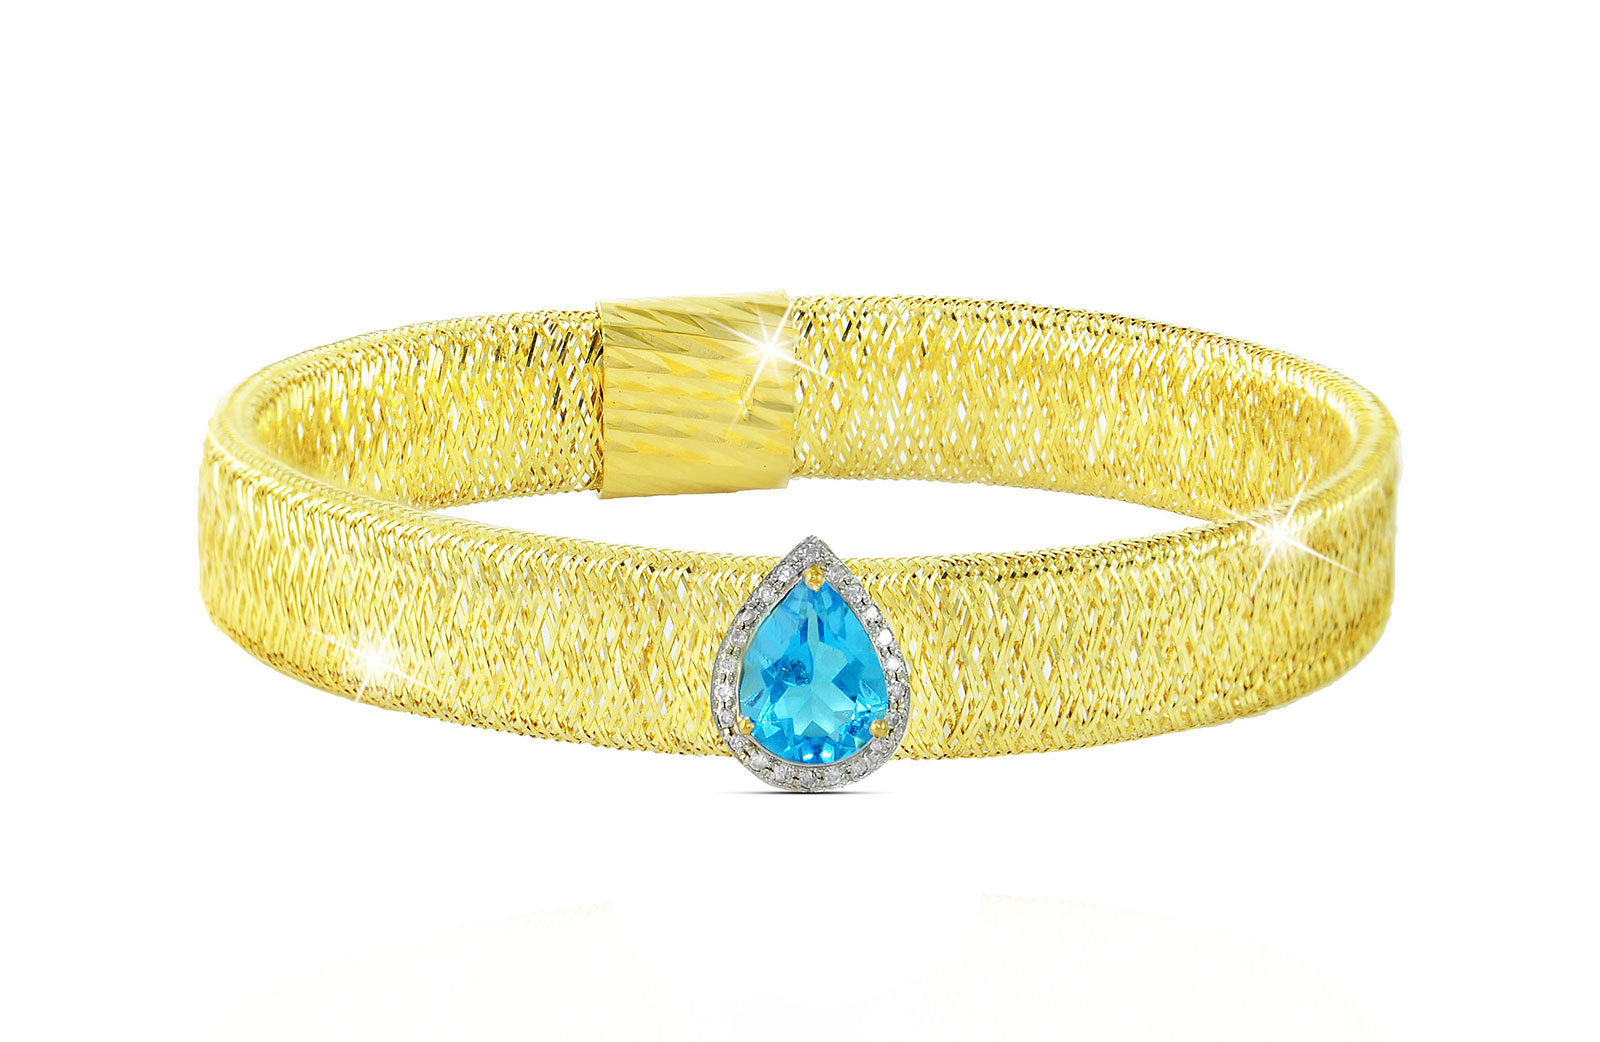 Vera Perla 18K Gold 0.12ct Diamonds, Topaz Mesh Bracelet